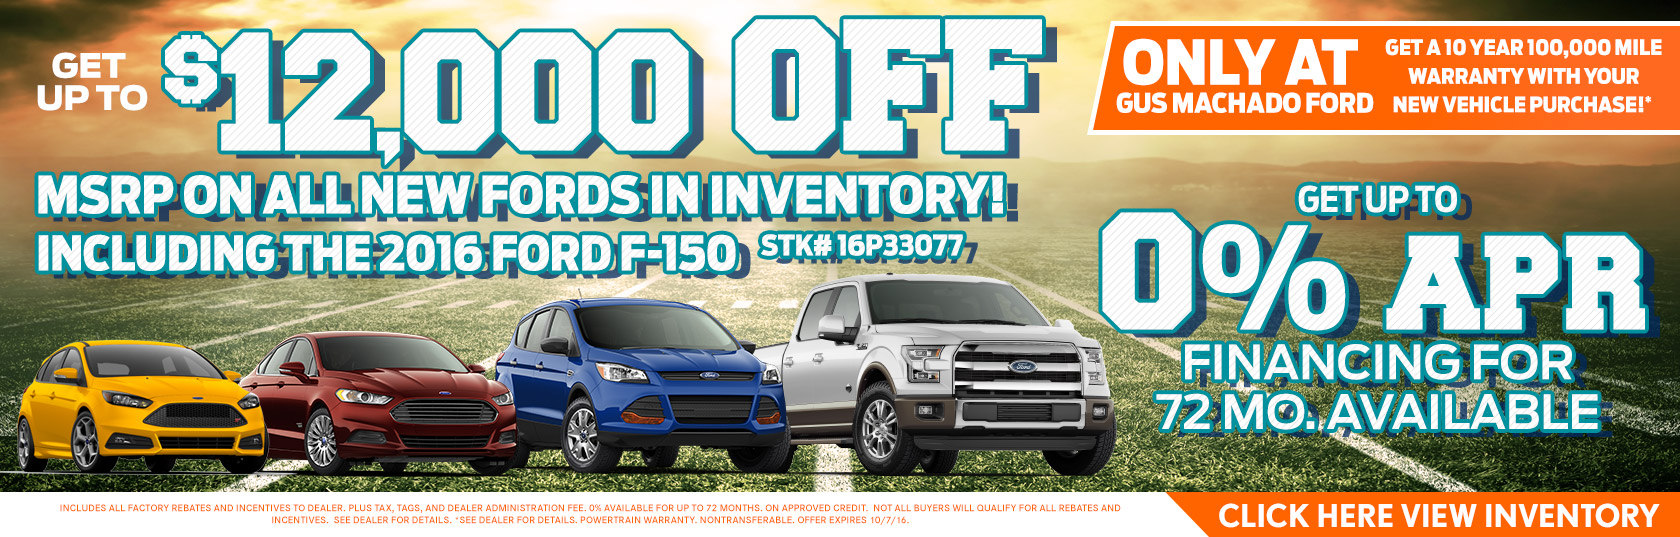 Ford Rebate Takes 2 250 Off Expedition Msrp In June 2019